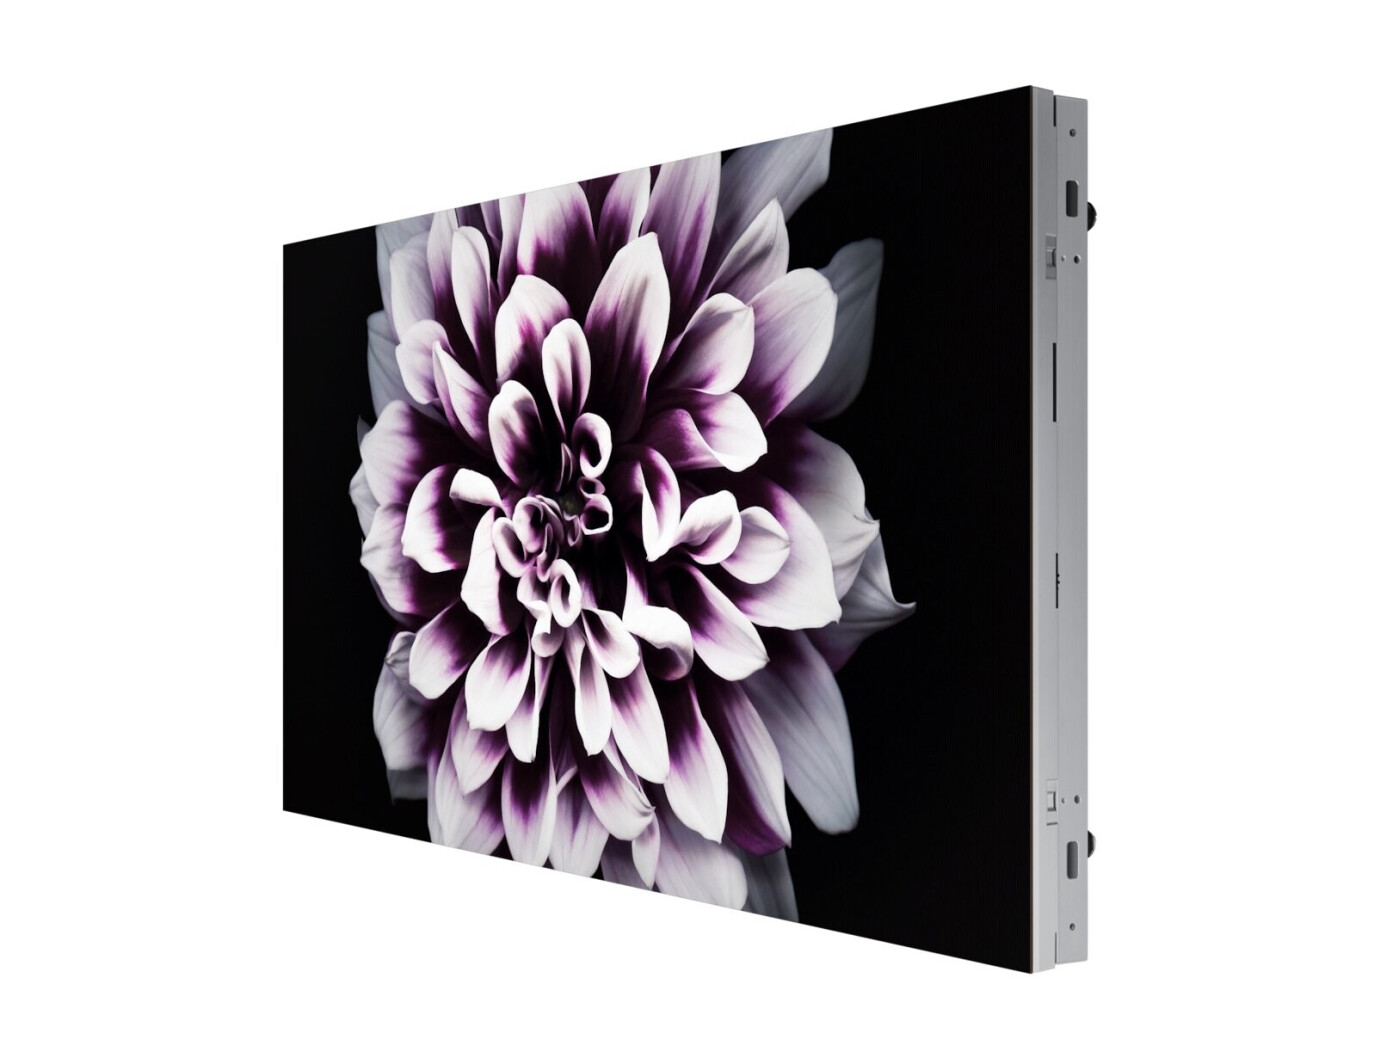 Samsung The Wall for business IW008J - Full HD Paket LED Wall 0,84mm Pixel Pitch